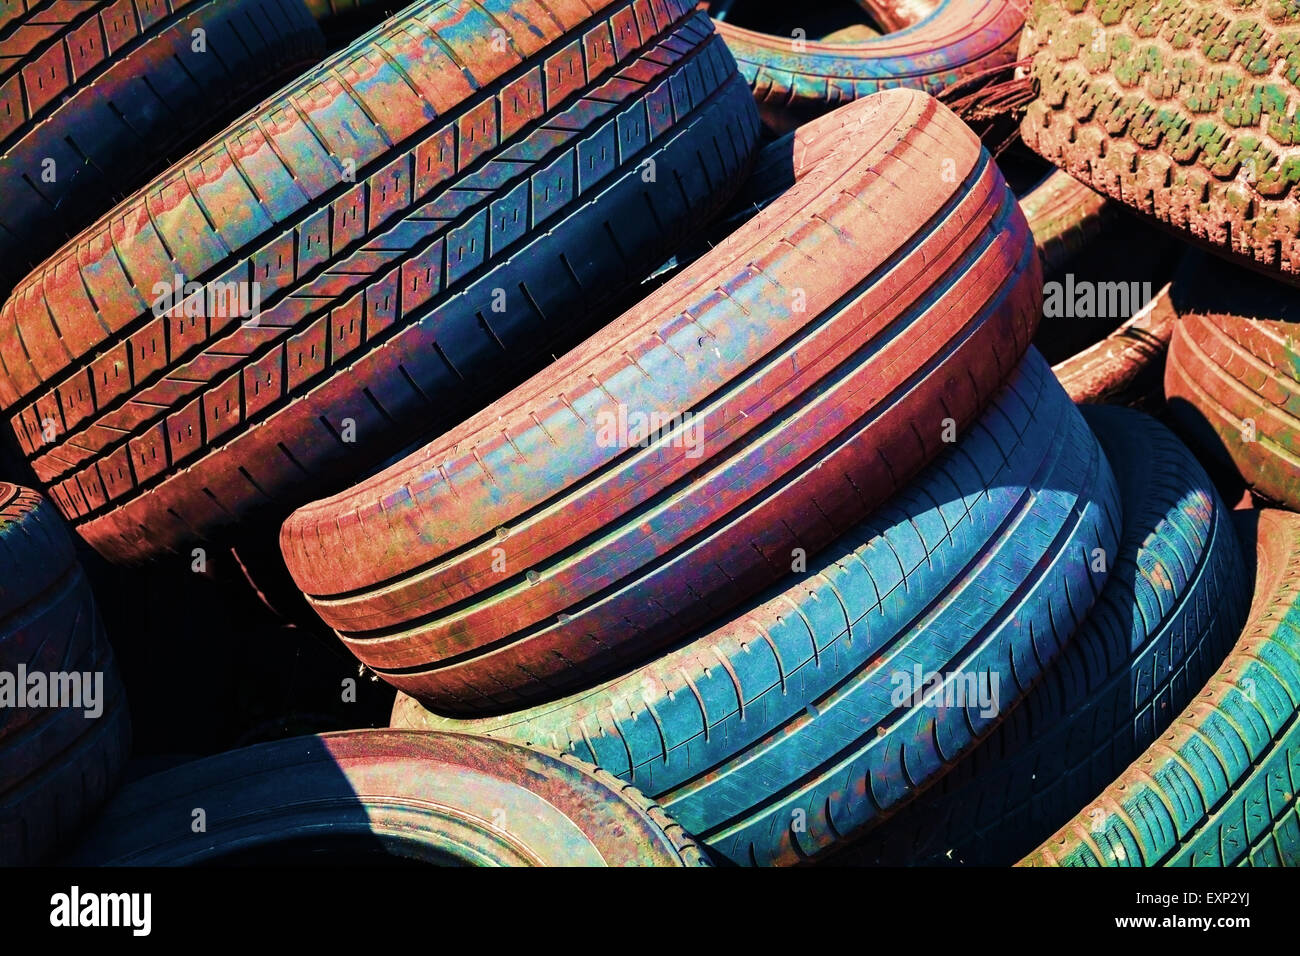 Heap of old colorful worn-out automotive tires - Stock Image